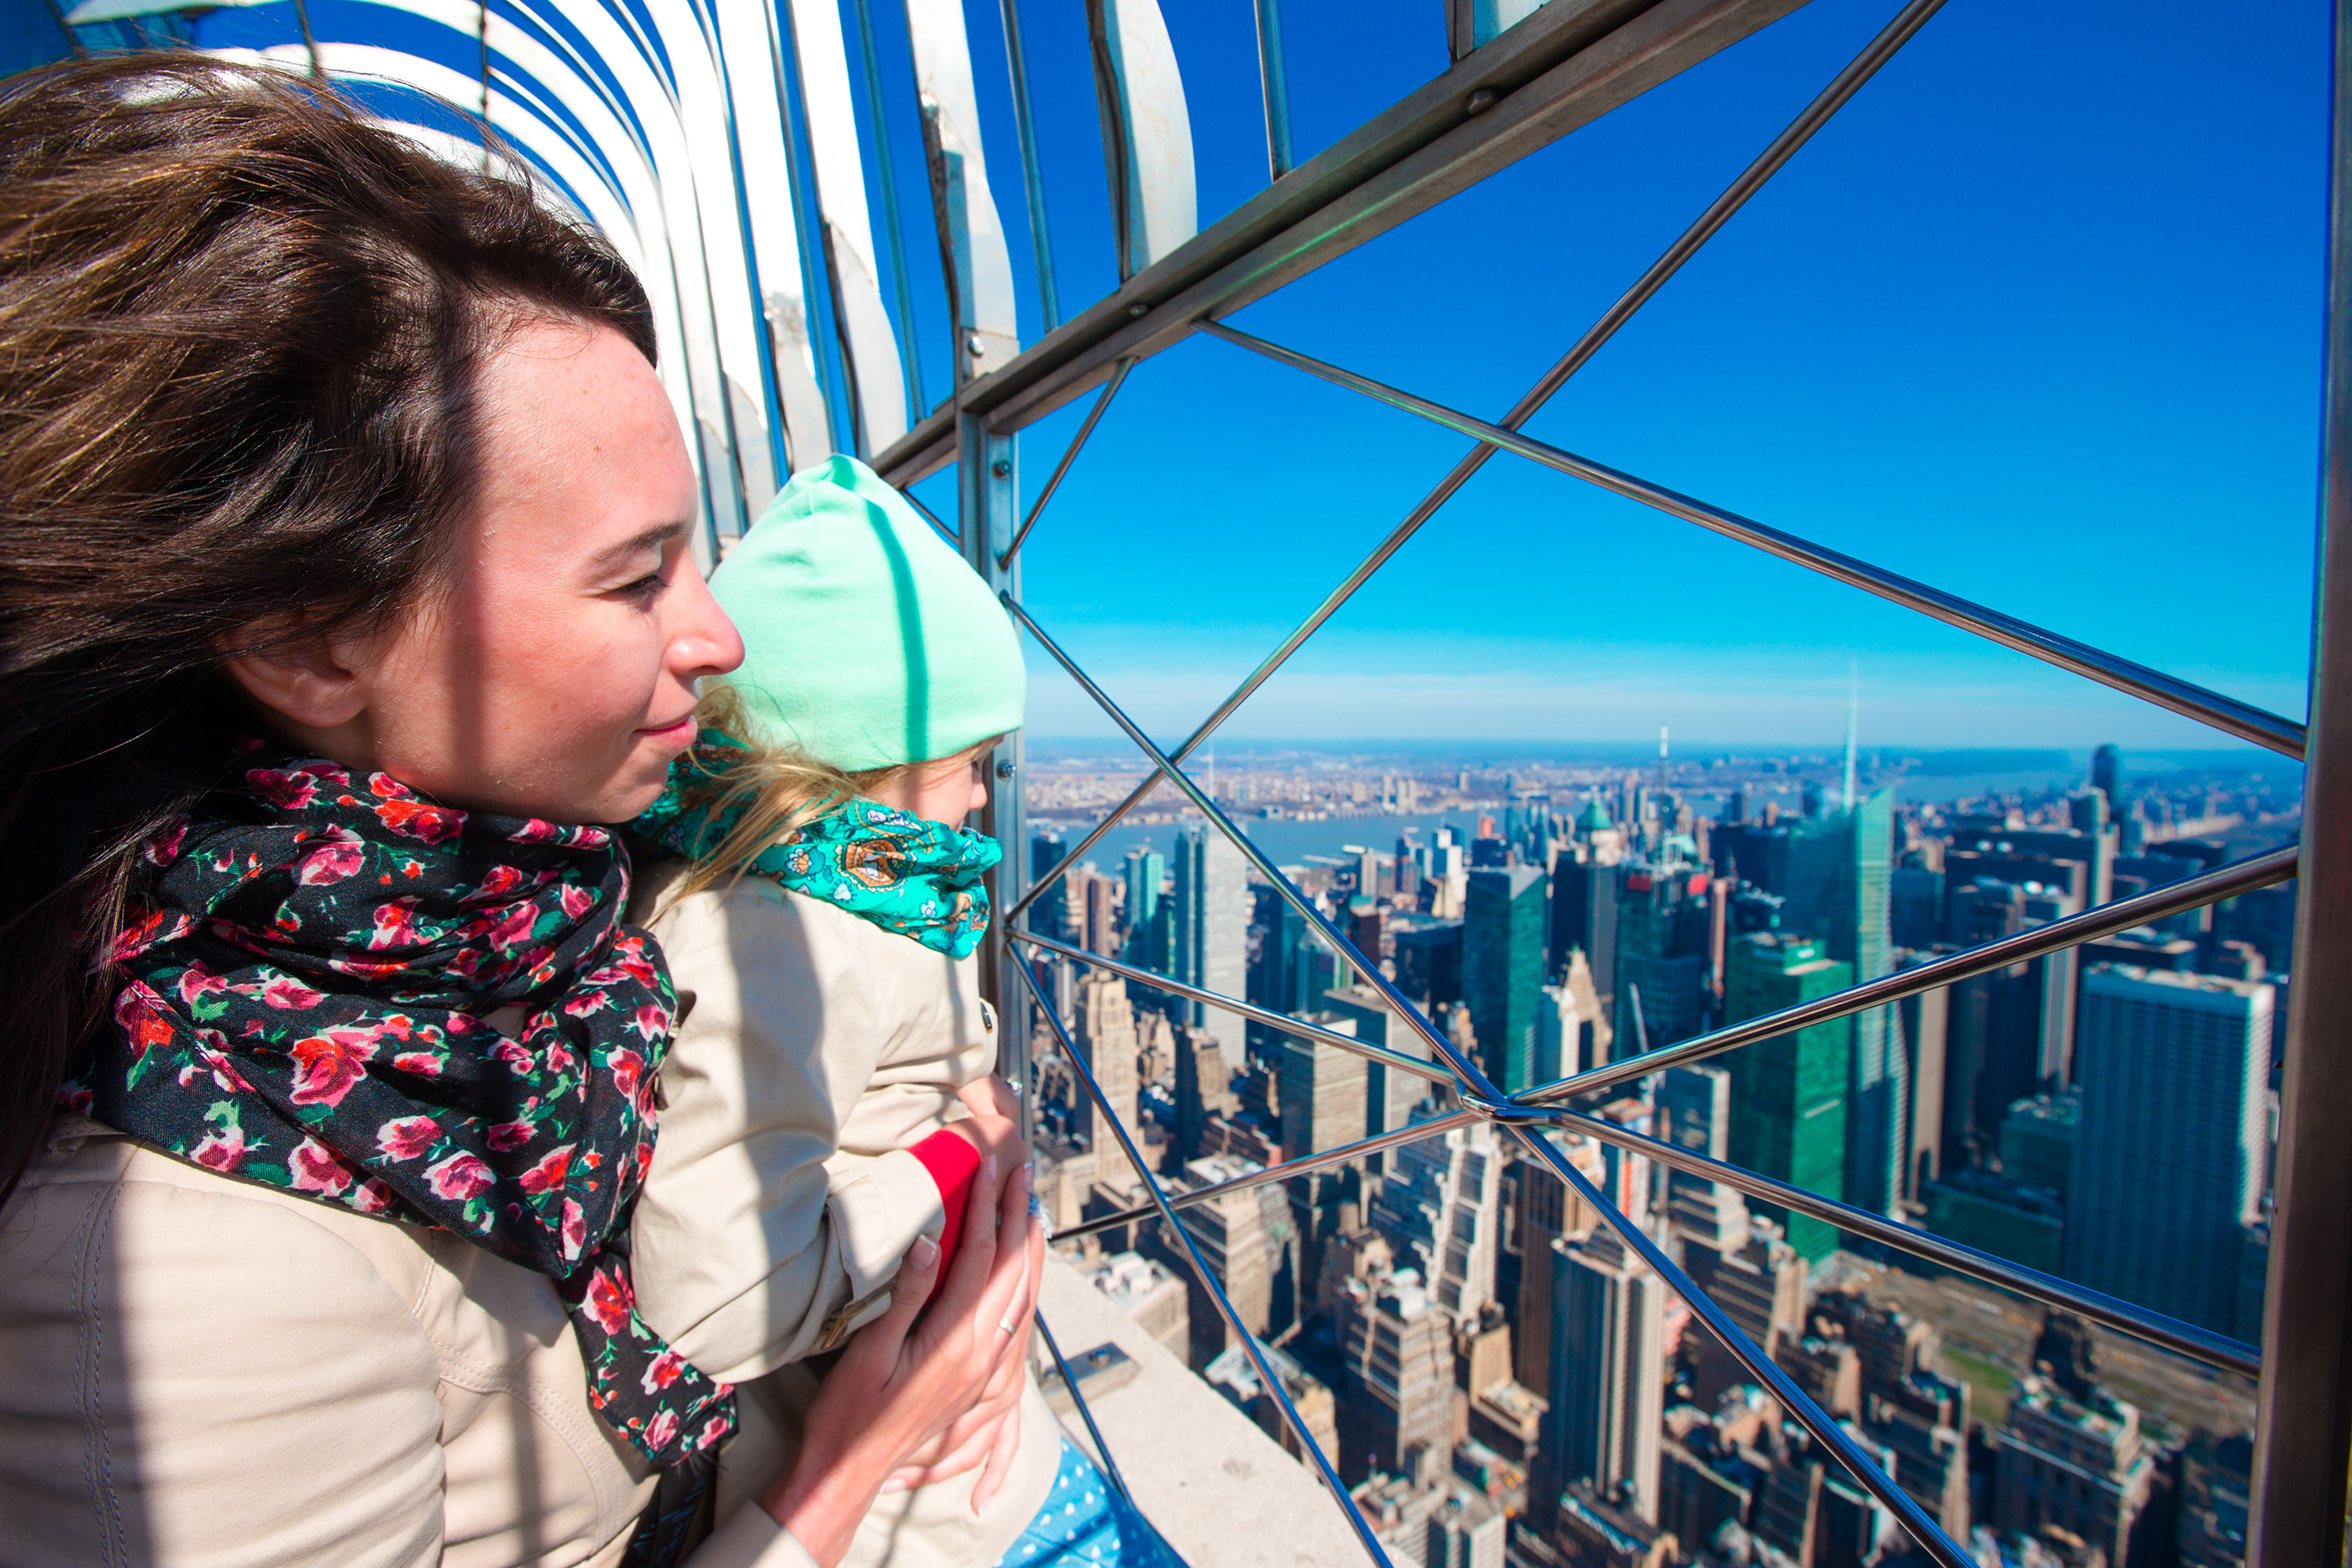 A family enjoys the view of New York City from the Empire State Building